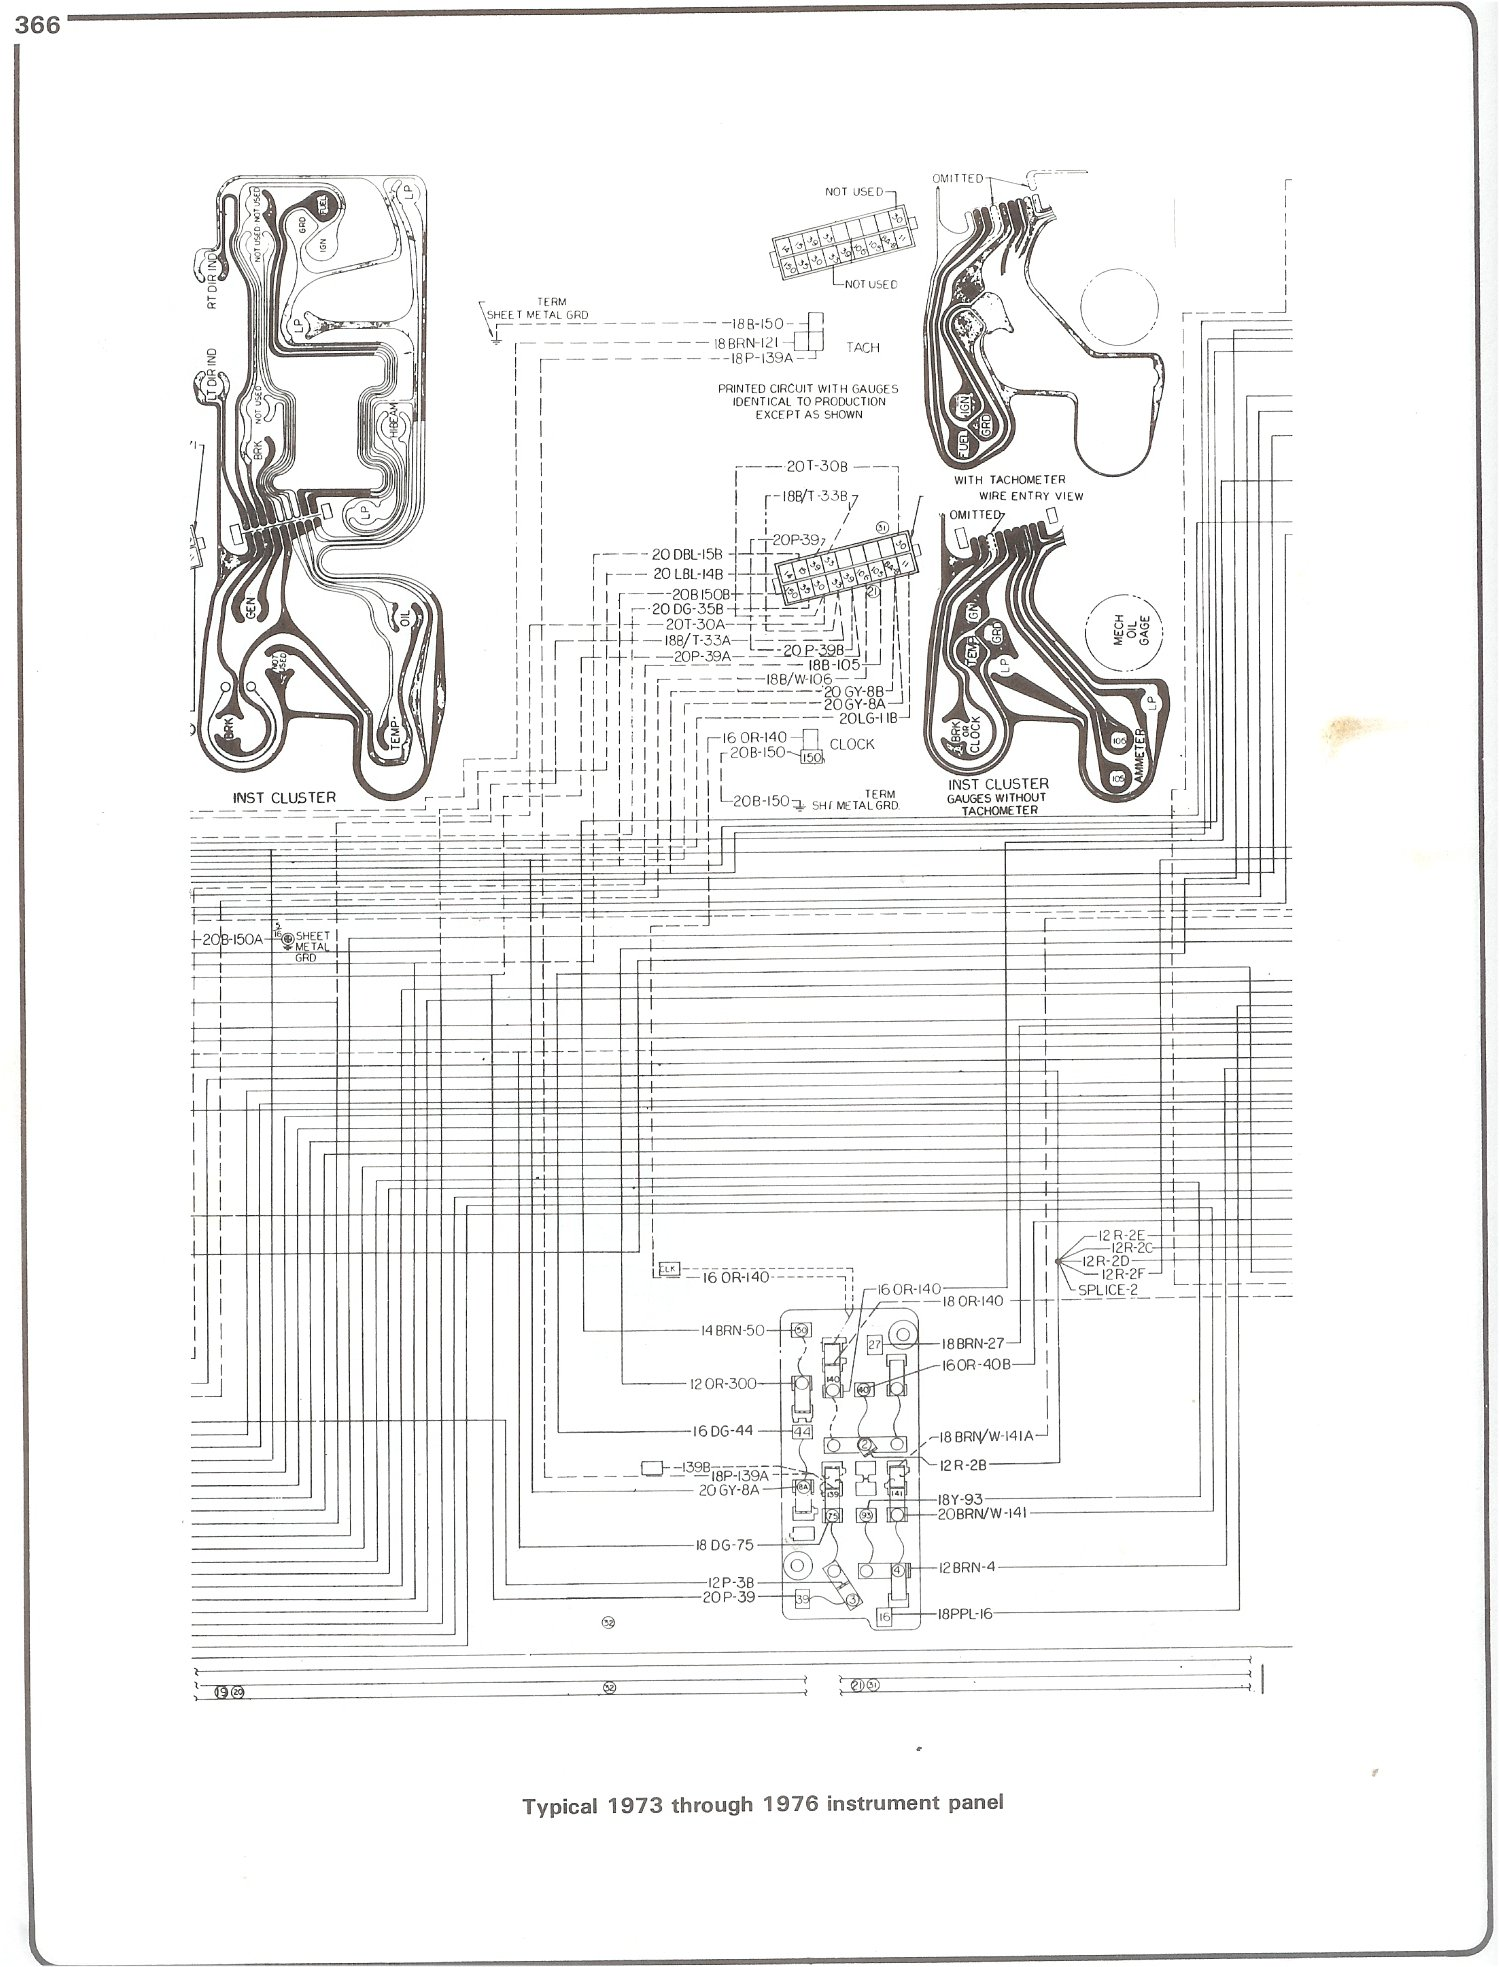 73 76_instrument complete 73 87 wiring diagrams 2008 Chevy Silverado Wiring Diagram at panicattacktreatment.co